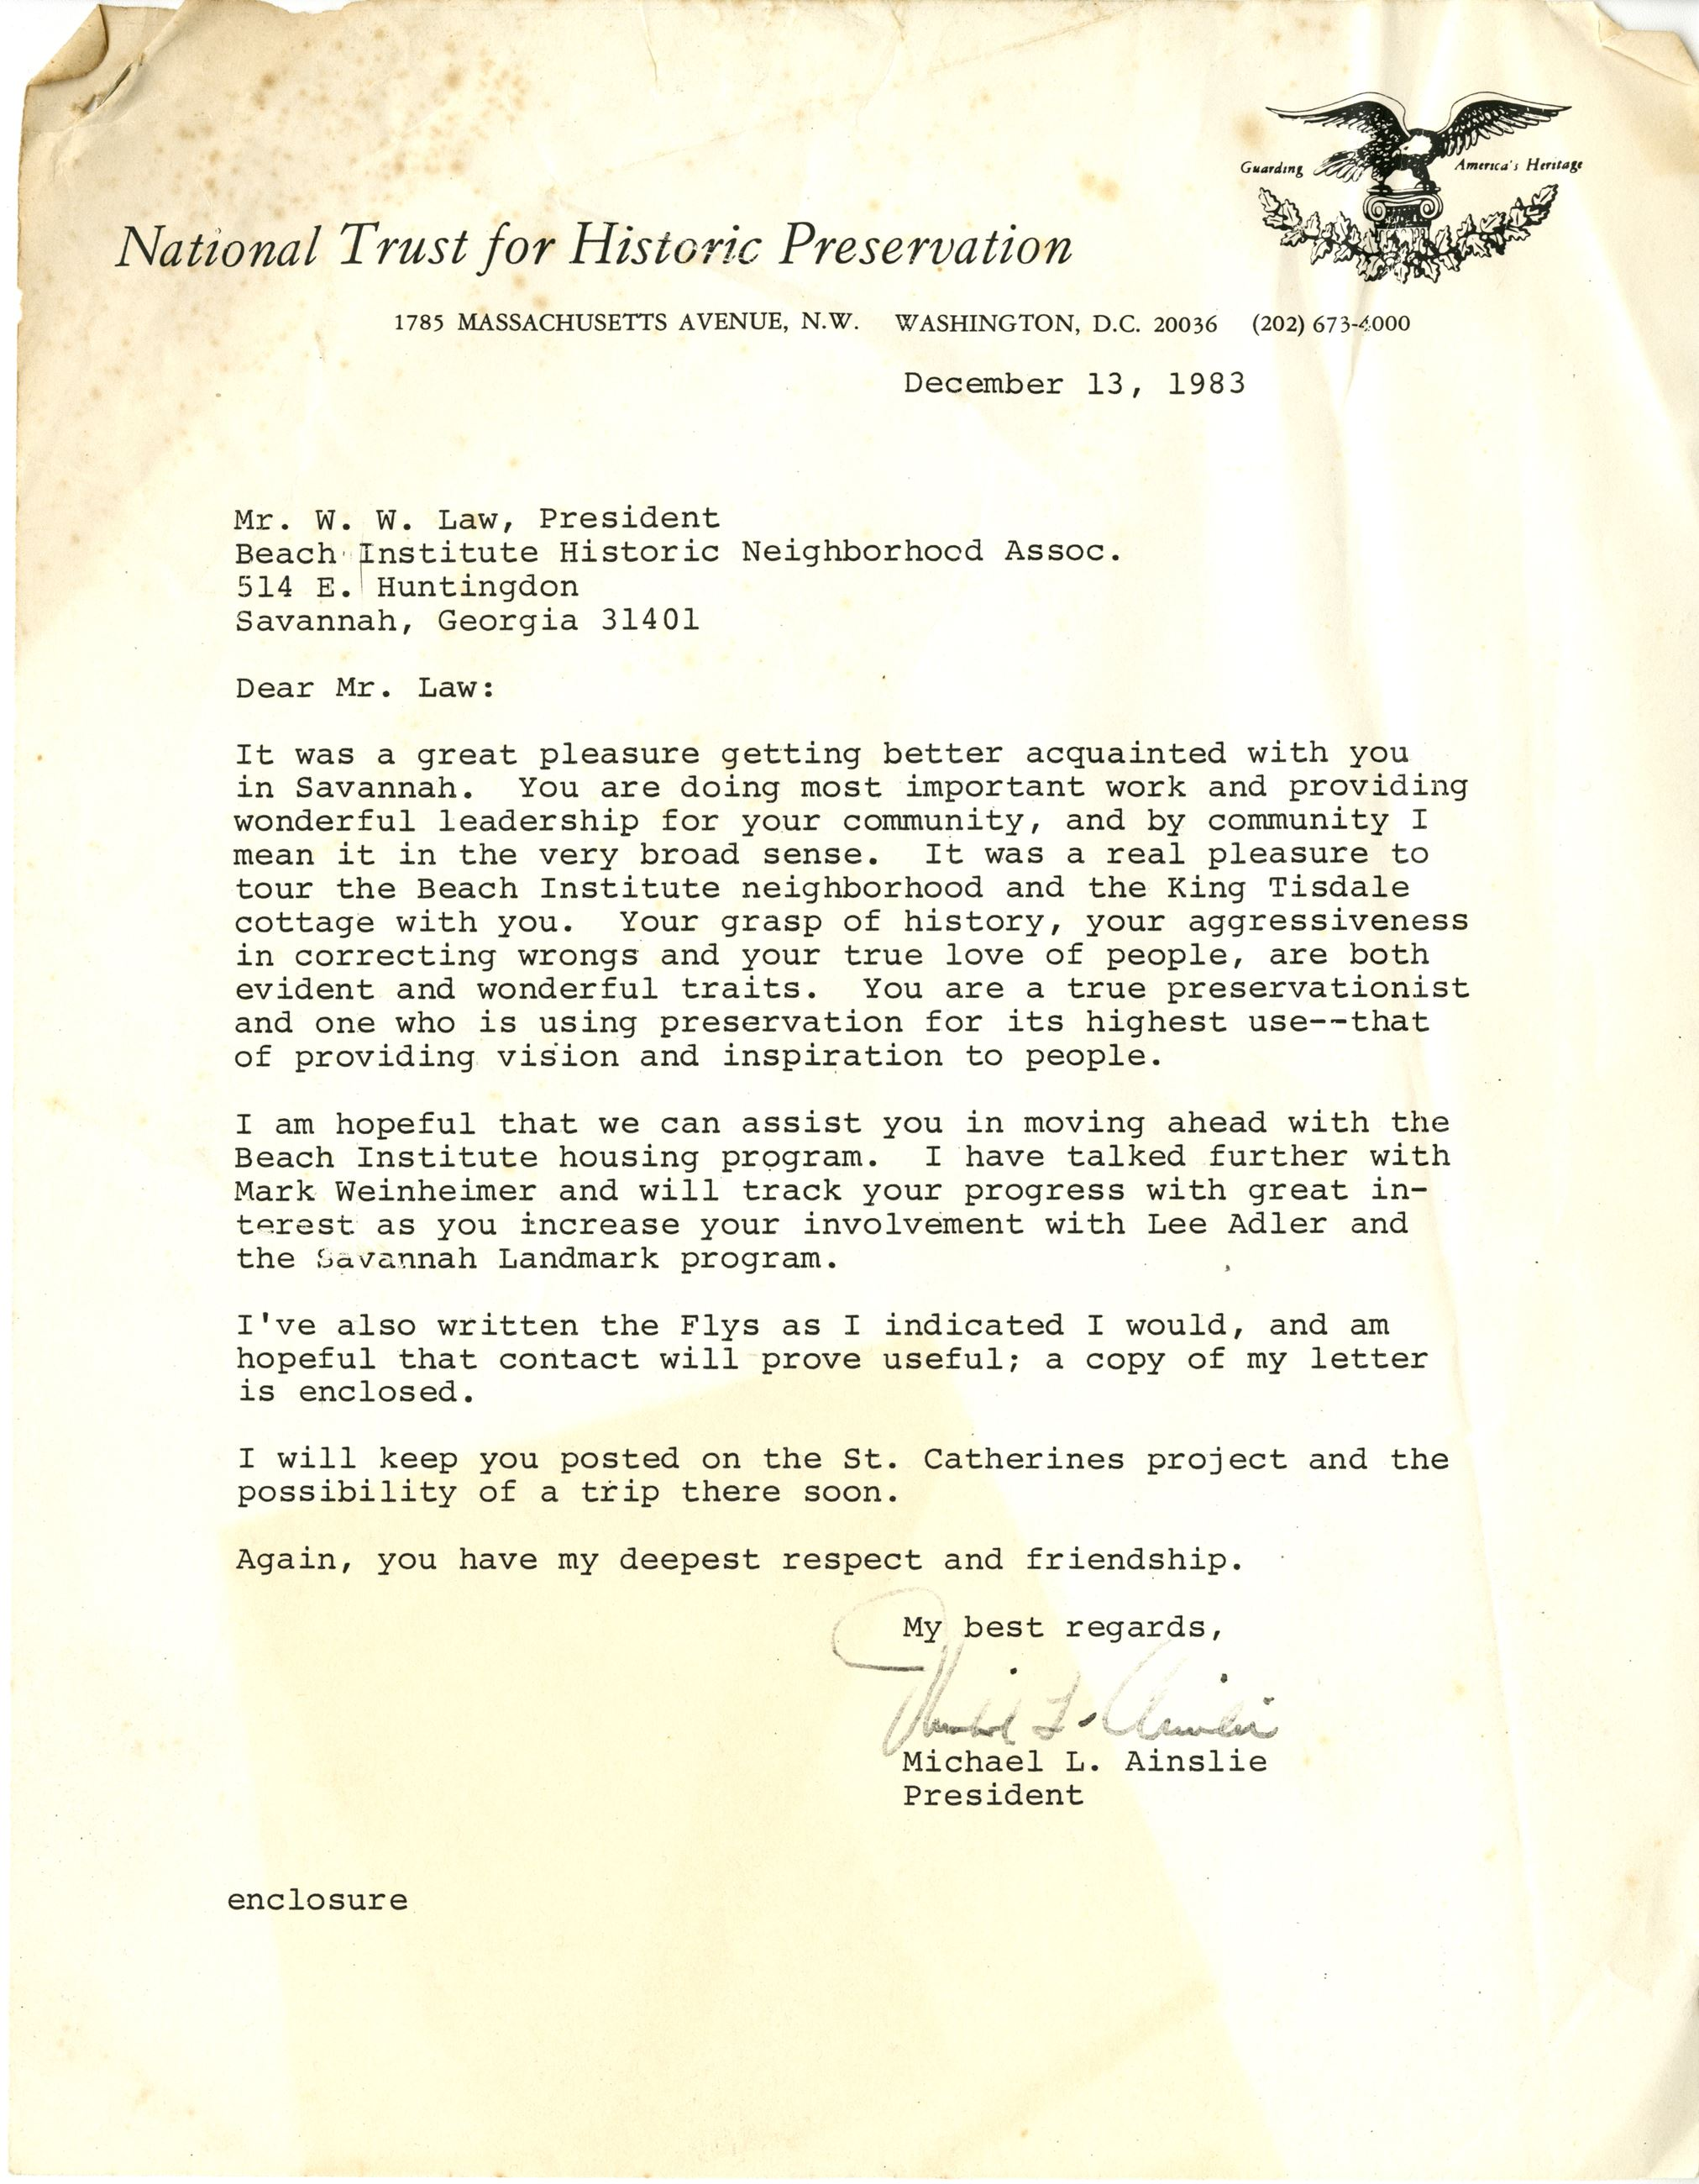 National Trust for Historic Preservation Letter